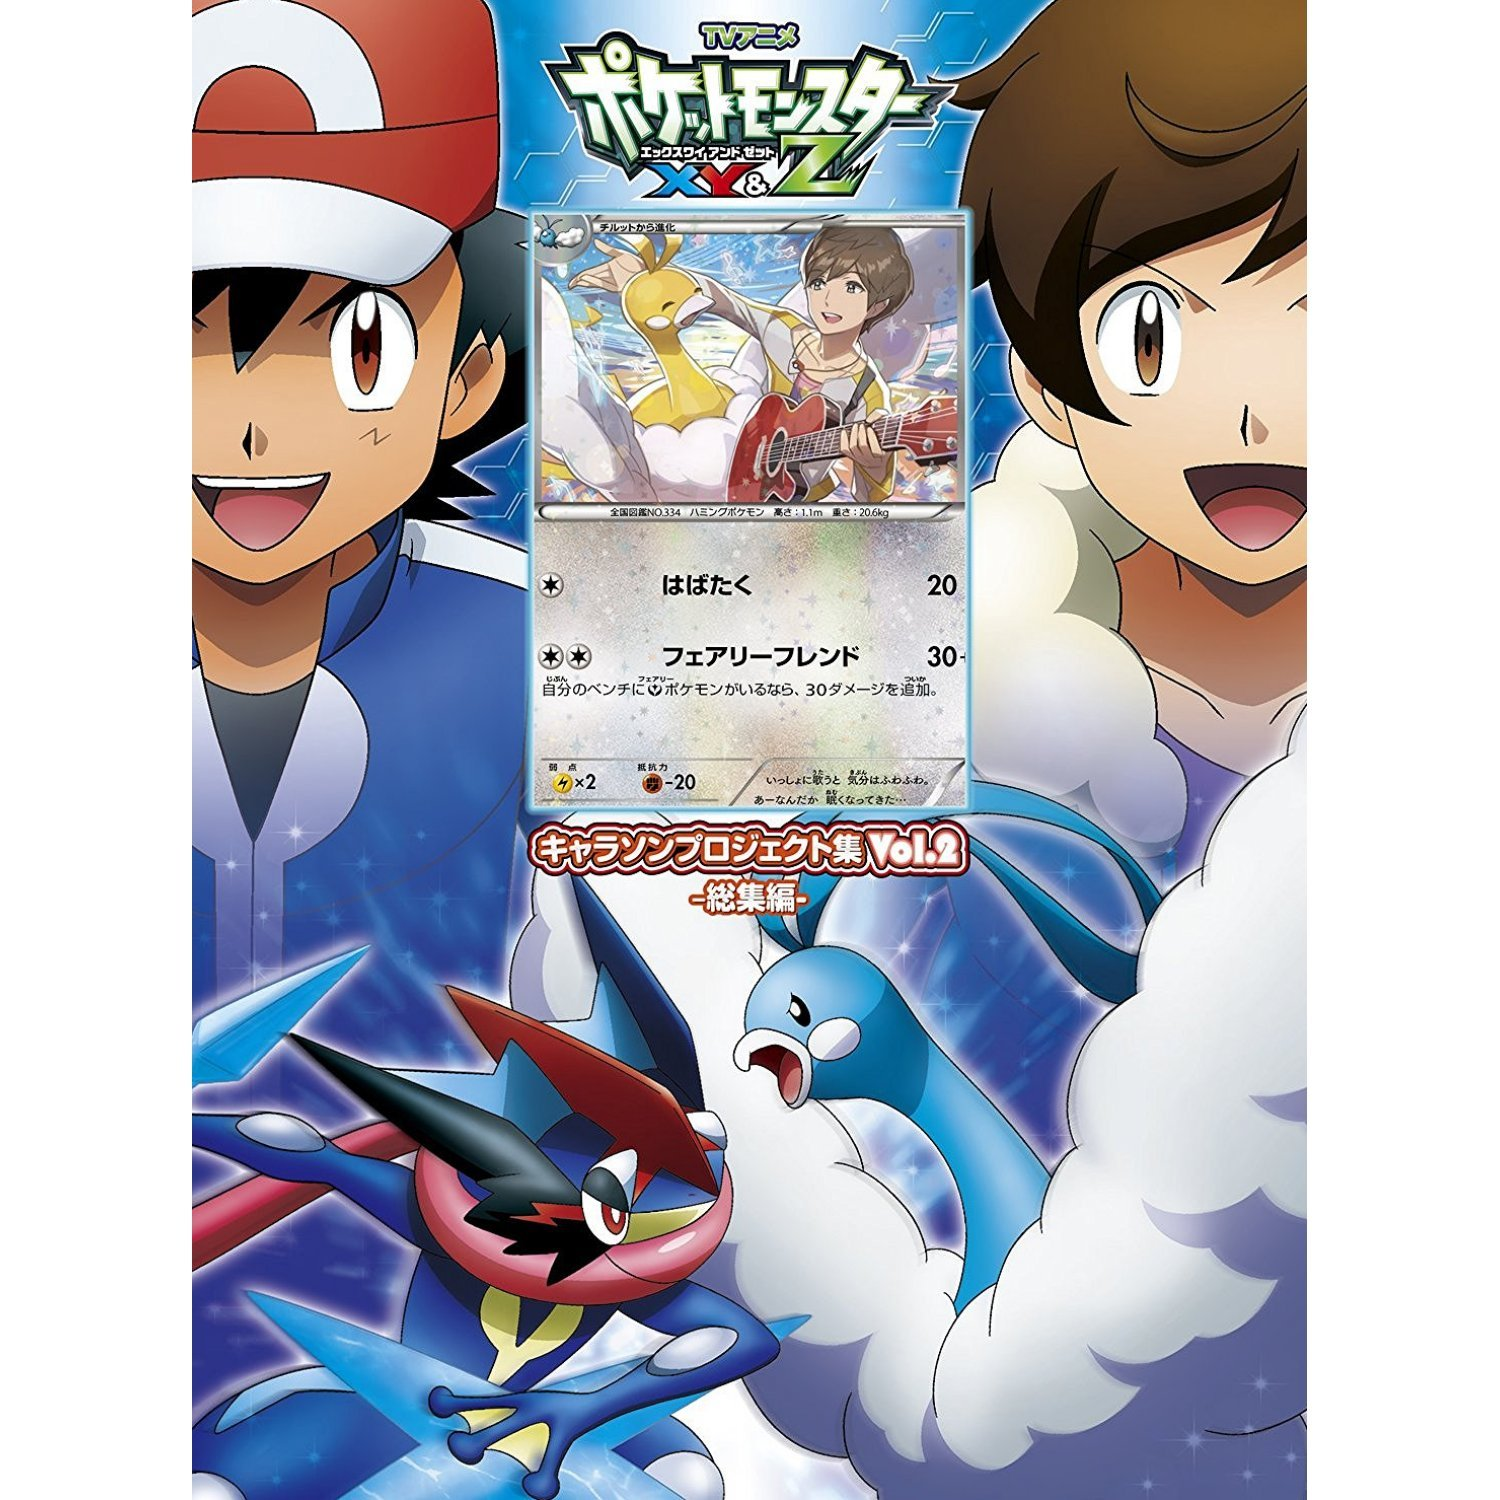 X And Y Anime Characters : Pokemon xy and z character song project shu vol